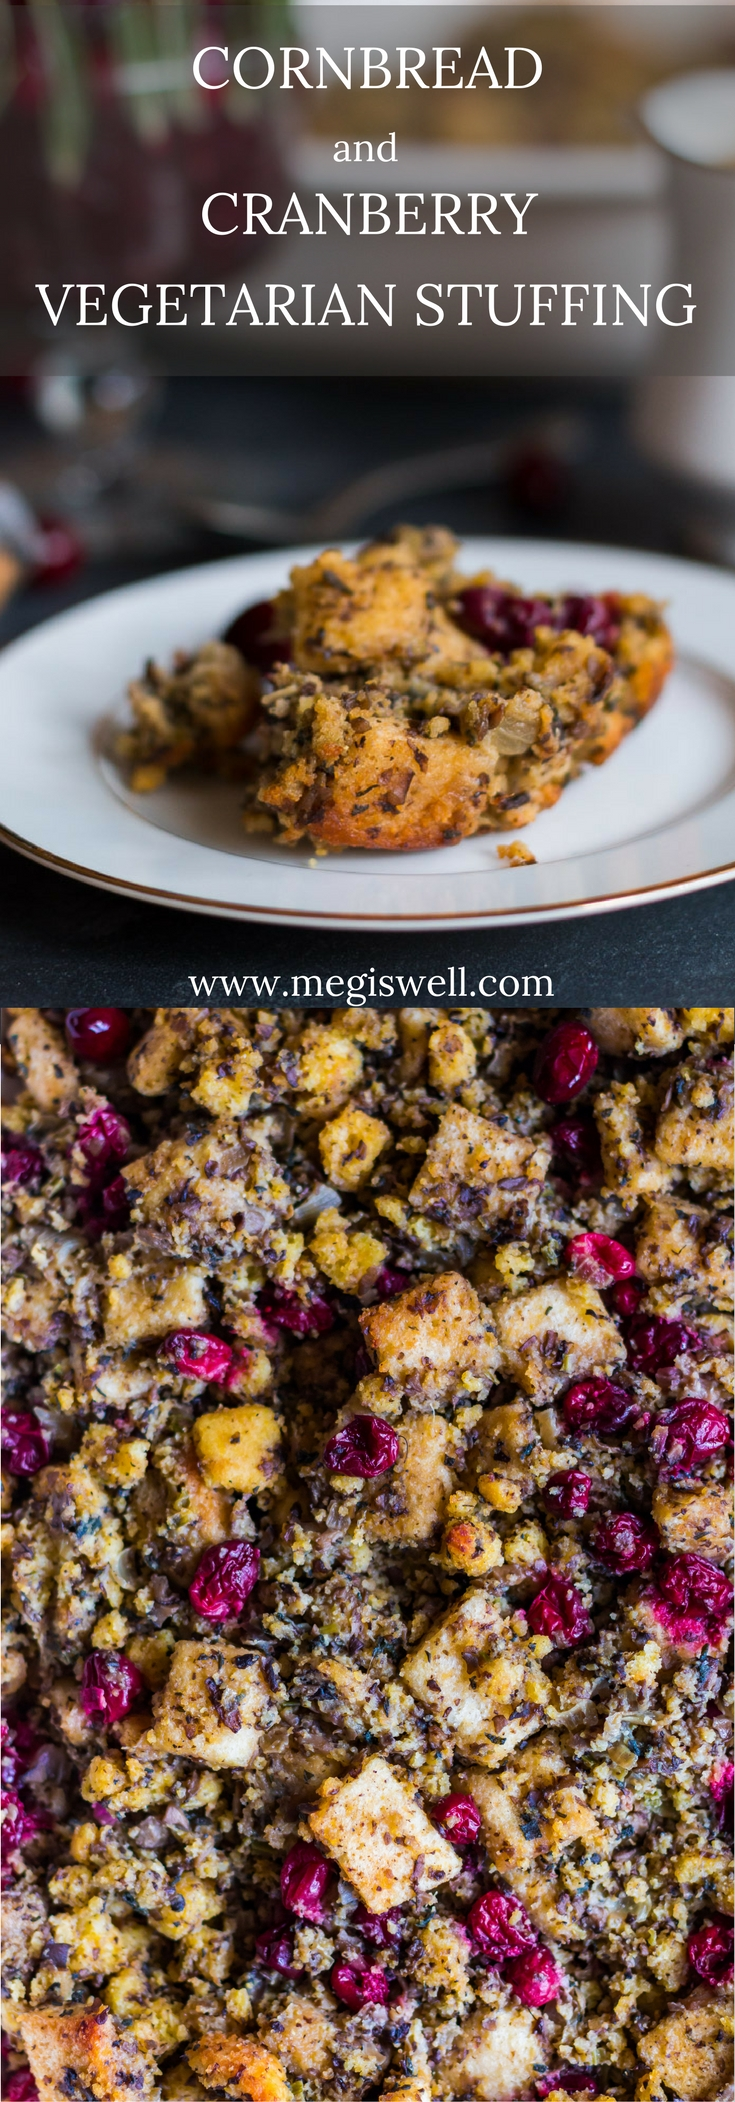 This Cornbread and Cranberry Vegetarian Stuffing is a remake of the classic traditional sausage stuffing, with mushrooms and sage providing the savory umami flavor base that pops from tart cranberries compliment. | #Thanksgiving #holidays | www.megiswell.com